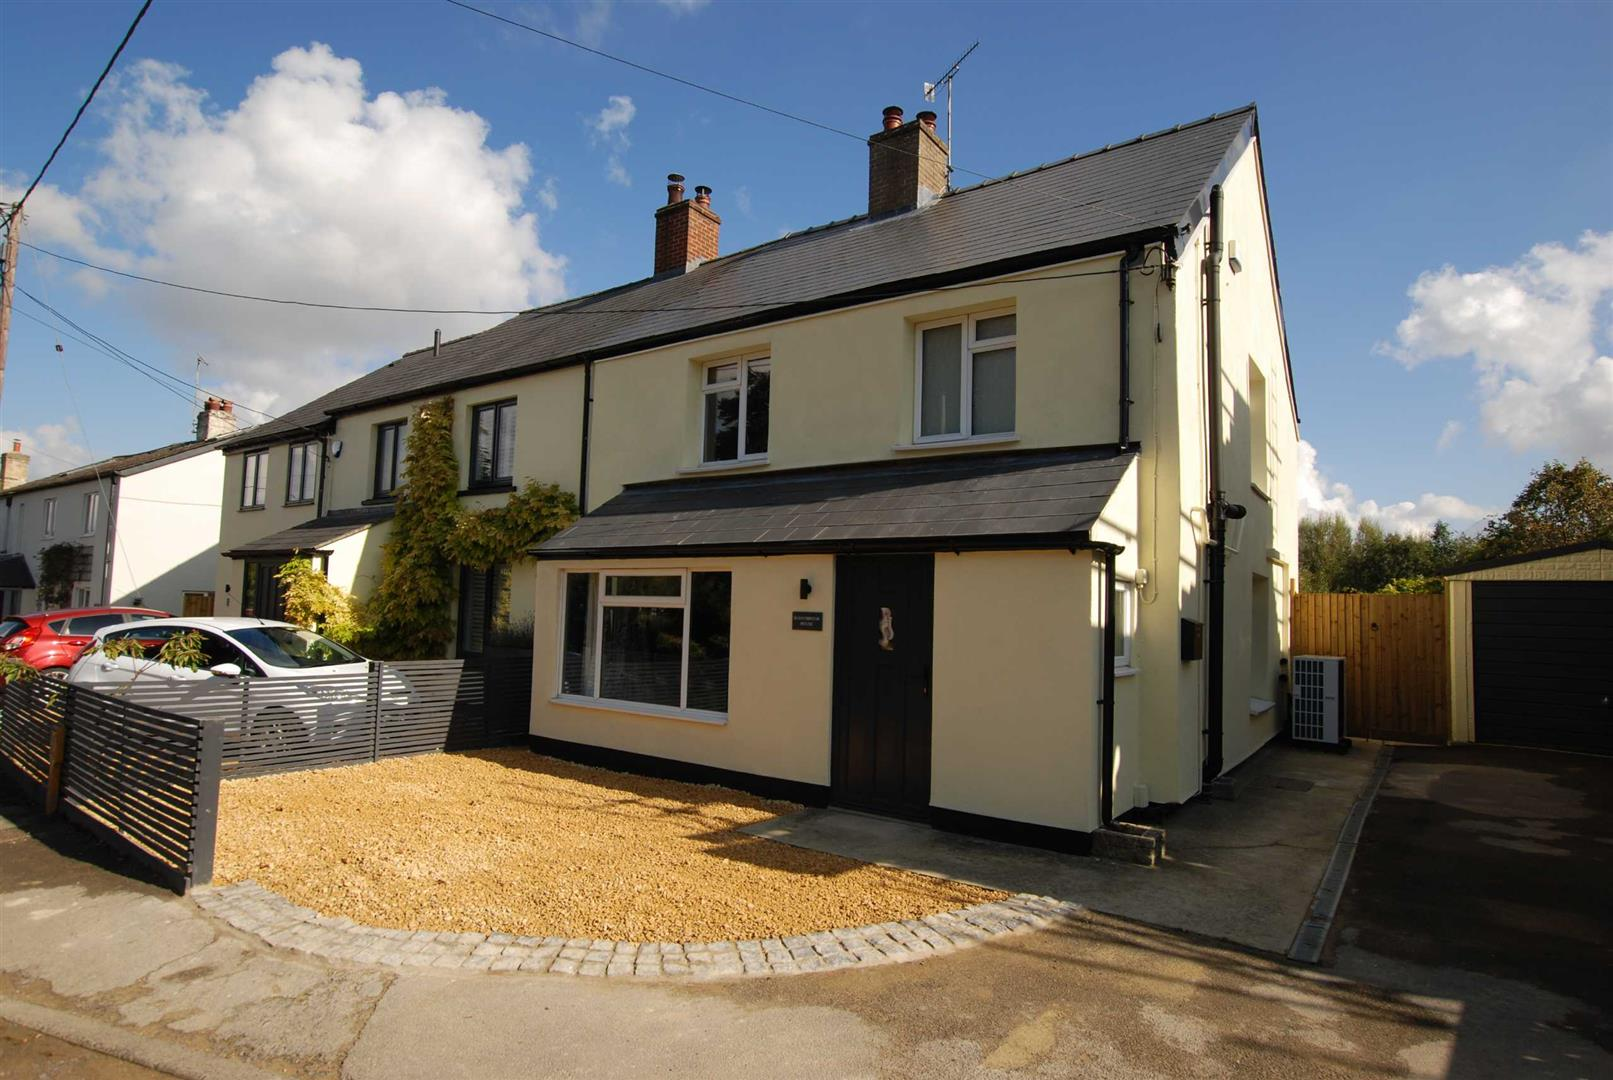 Andoversford - 3 Bed House - Semi-Detached